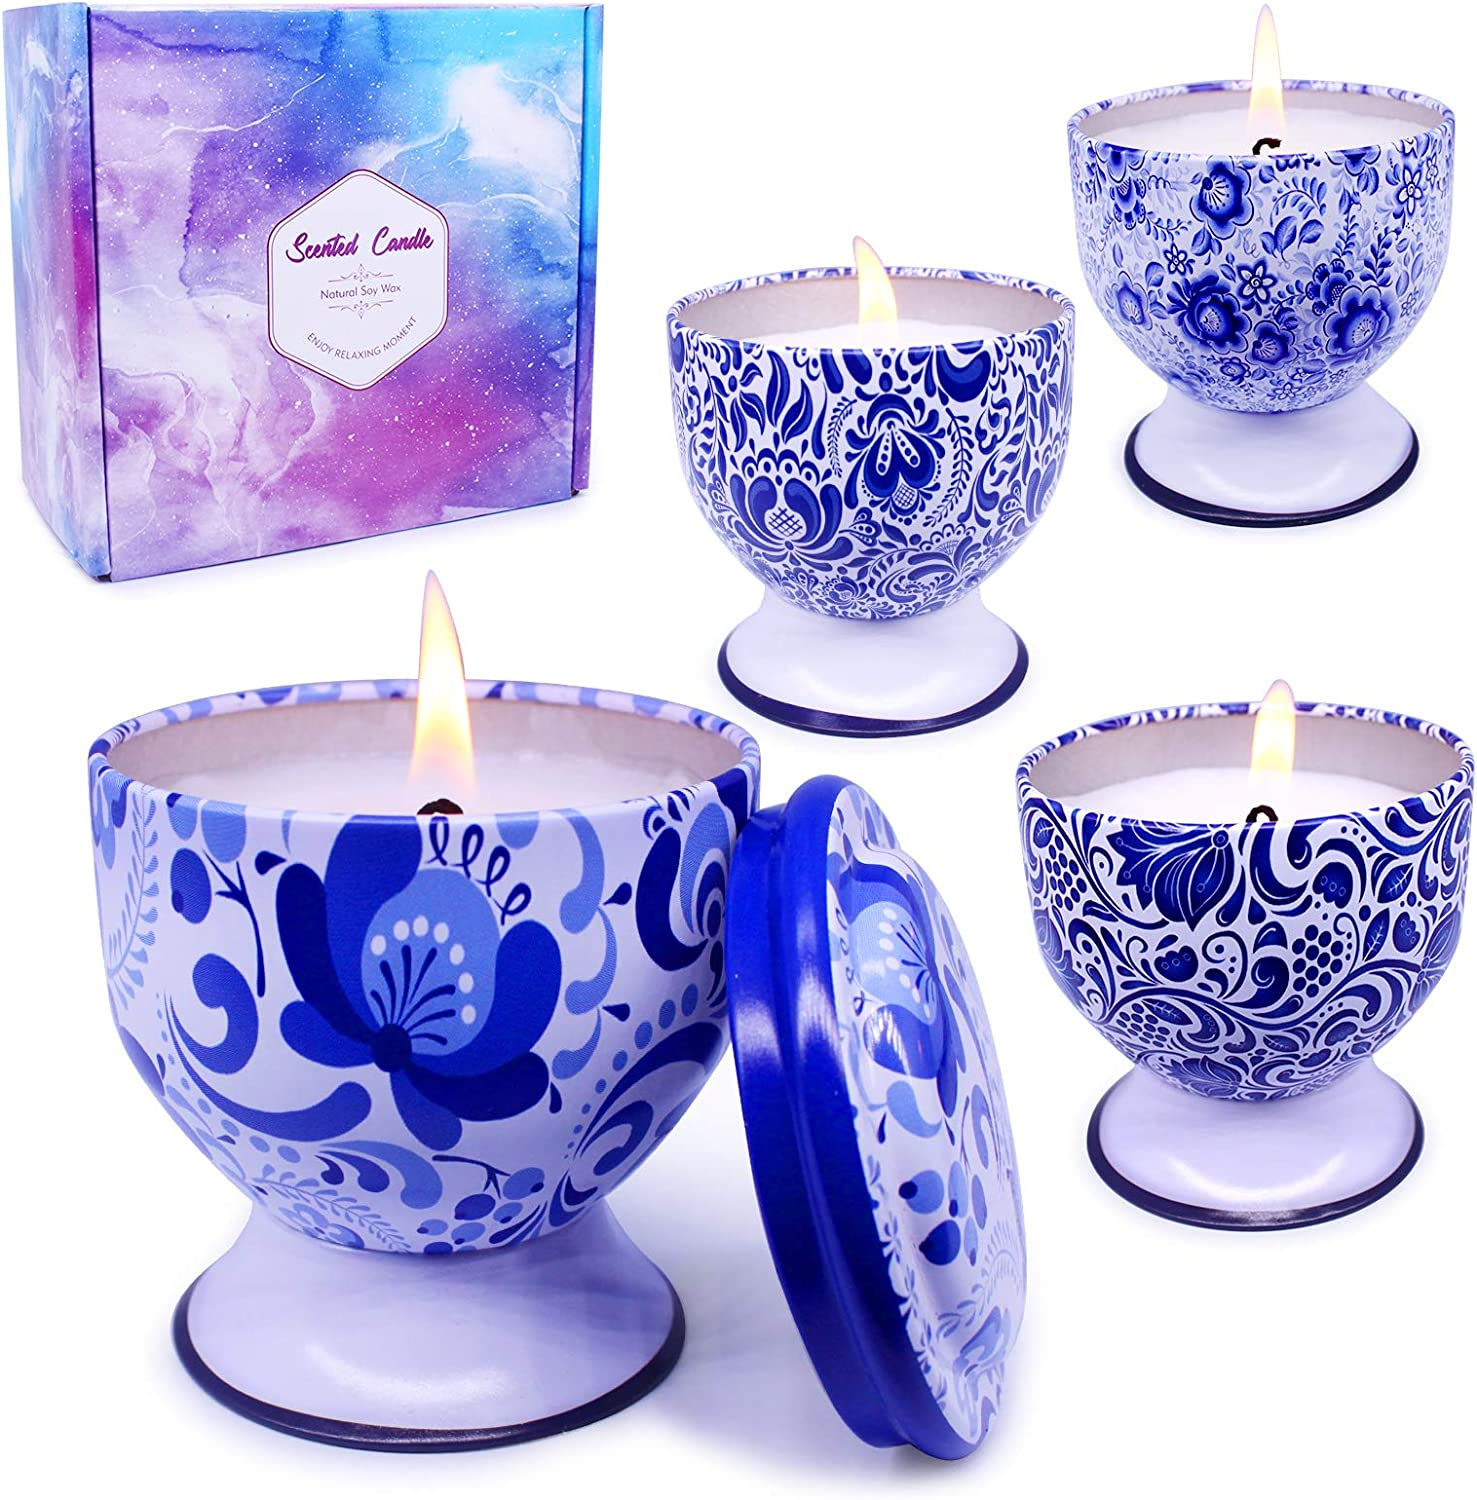 Enamorare Scented Candles Gift Set Natural Soy Wax Travel Tin Candles with Pedestal for Stress Relief and Home Decor, 4 oz with 4 Fragrance-Lavender, Lemon,Vanilla &Jasmine,Apple & Cinnamon